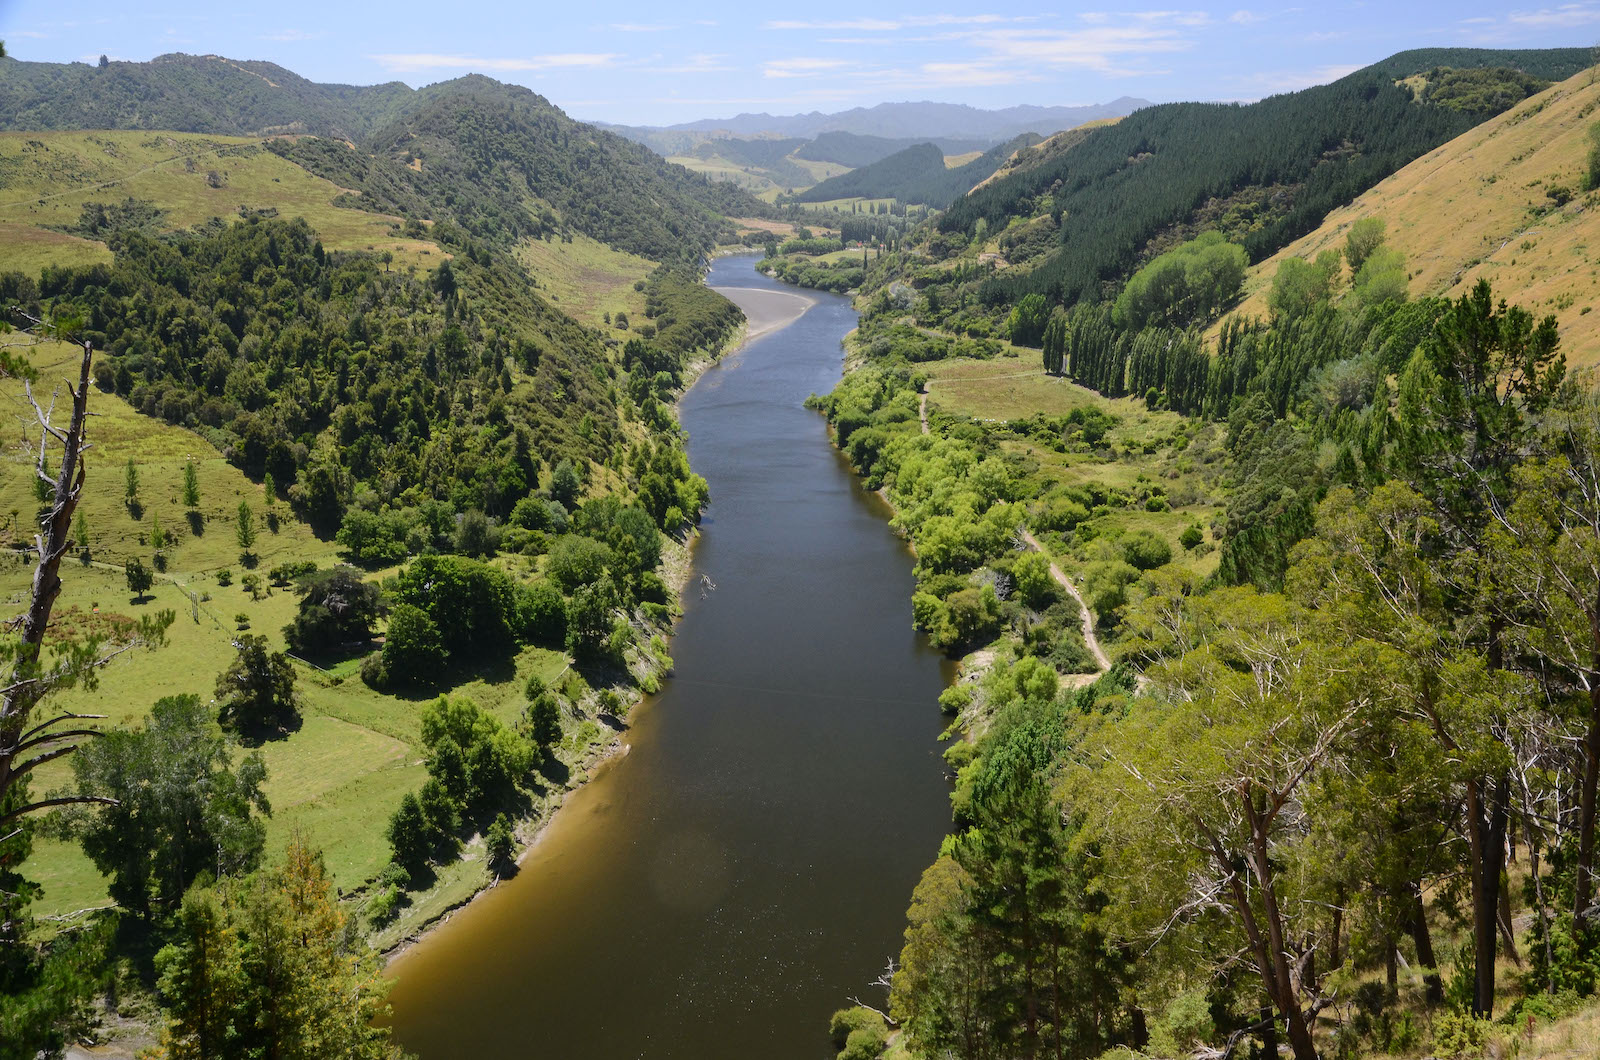 Whanganui River, New Zealand. Photo: Flickr/Tim Proffitt-White